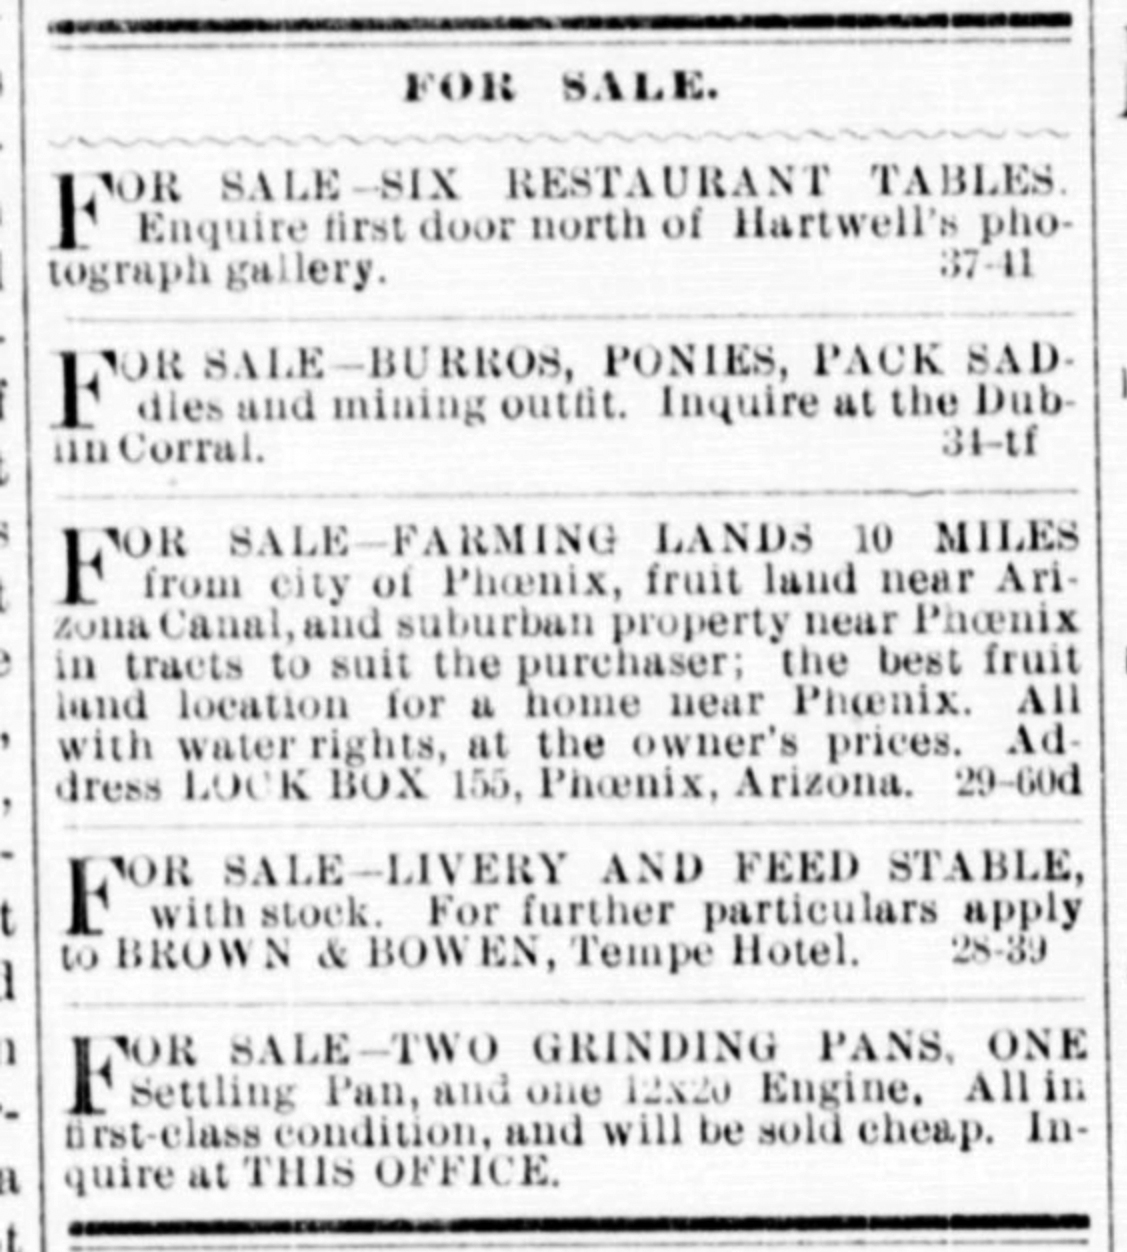 History Adventuring: Looking at For Sale ads in 1890 Phoenix, Arizona